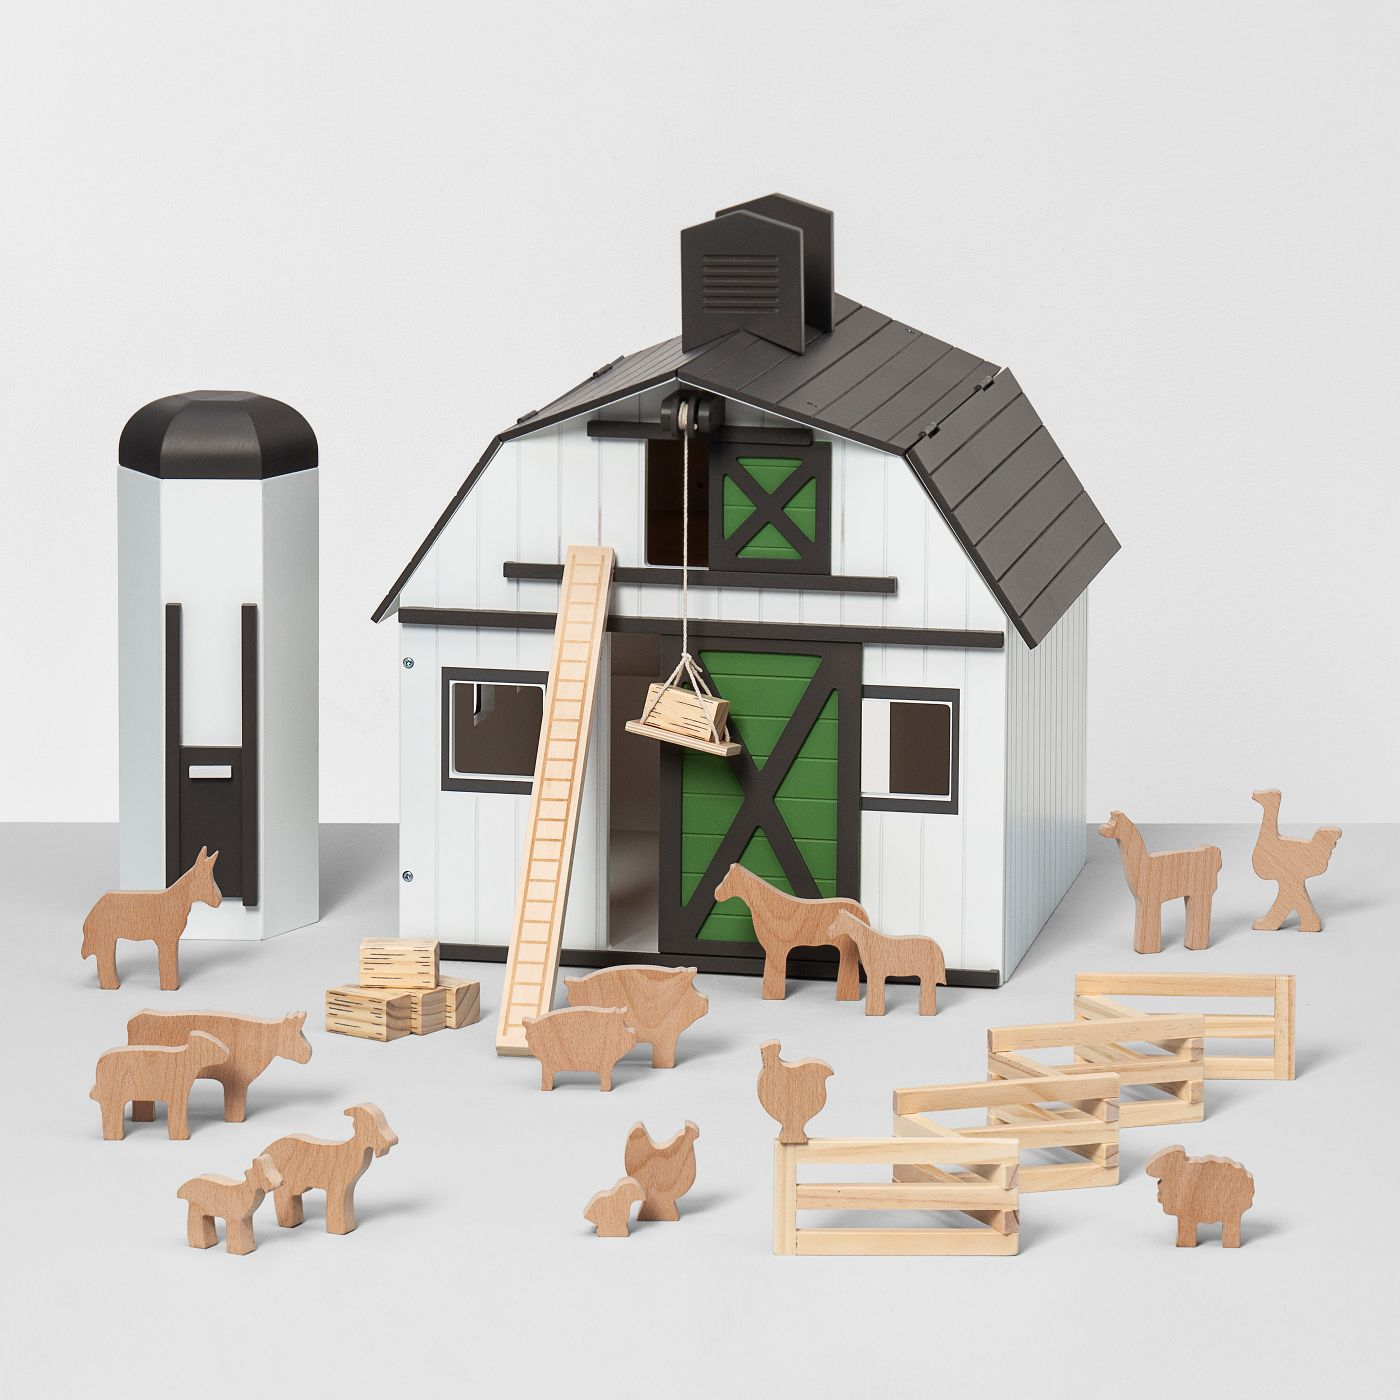 Toy Barn with Animal Figurines - Hearth & Hand™ with Magnolia - image 1 of 9